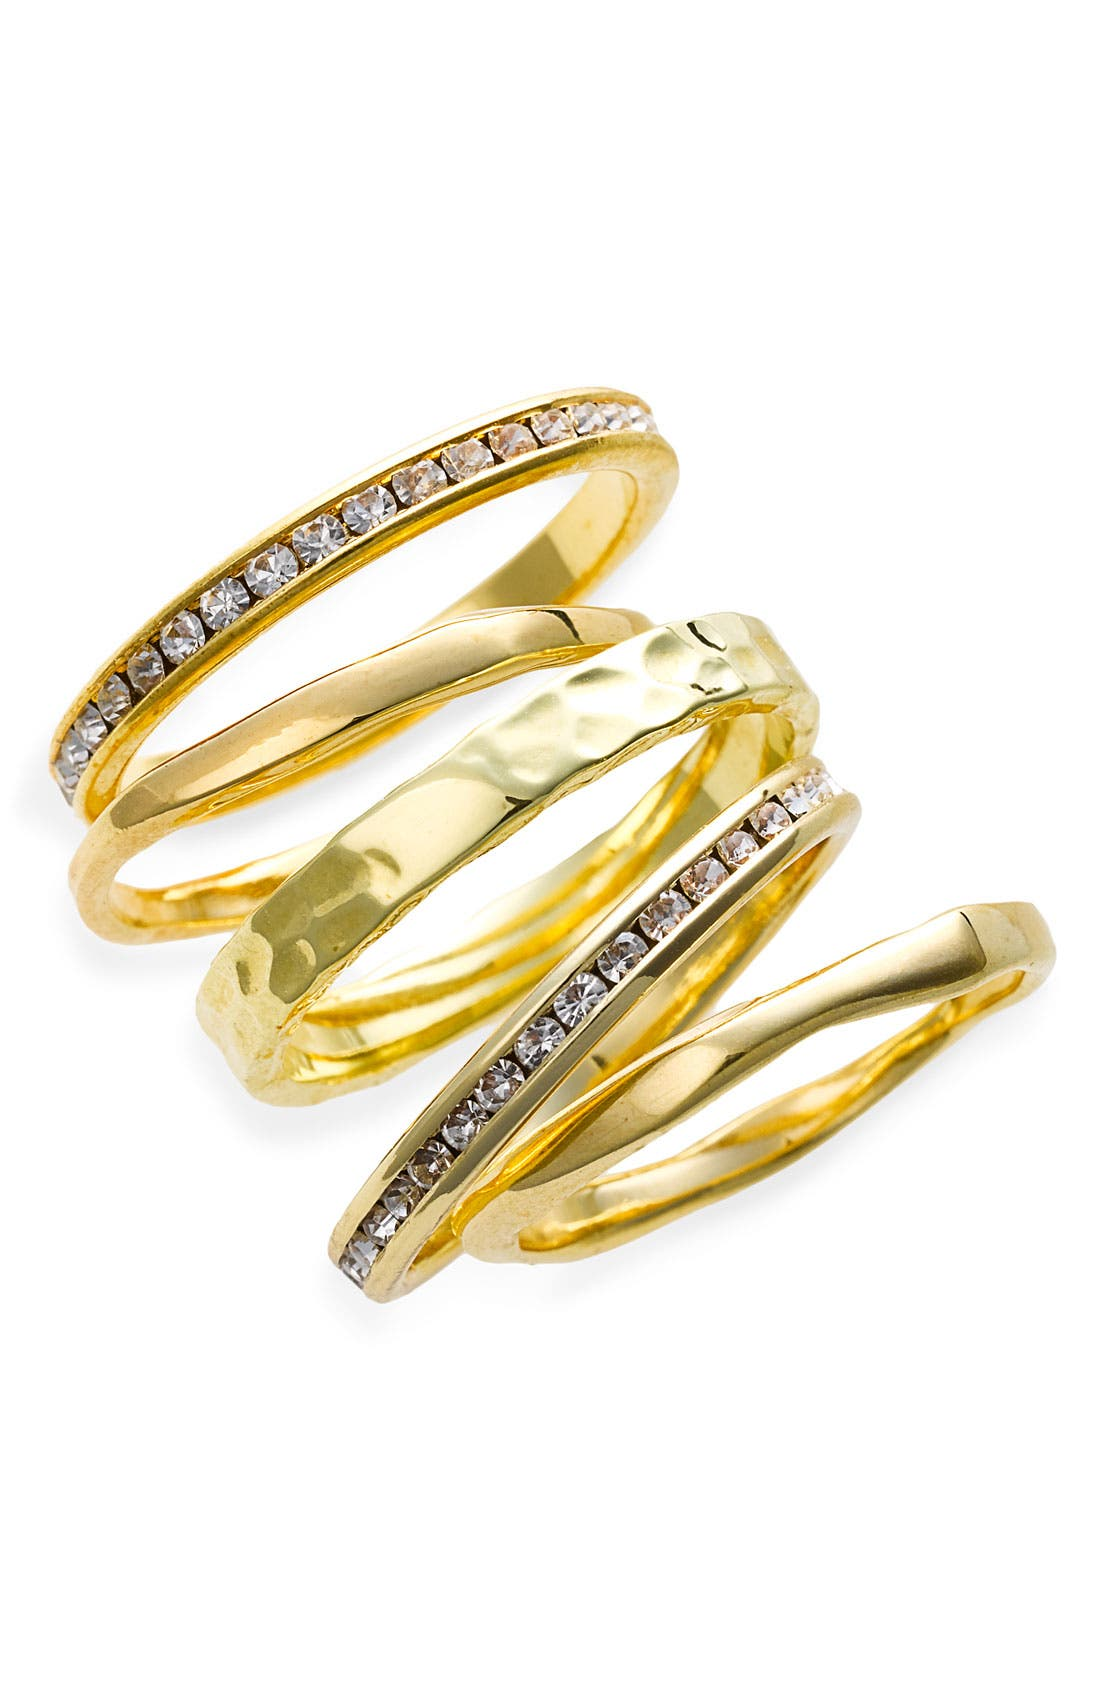 Main Image - Ariella Collection Slim Stackable Rings (Set of 5)